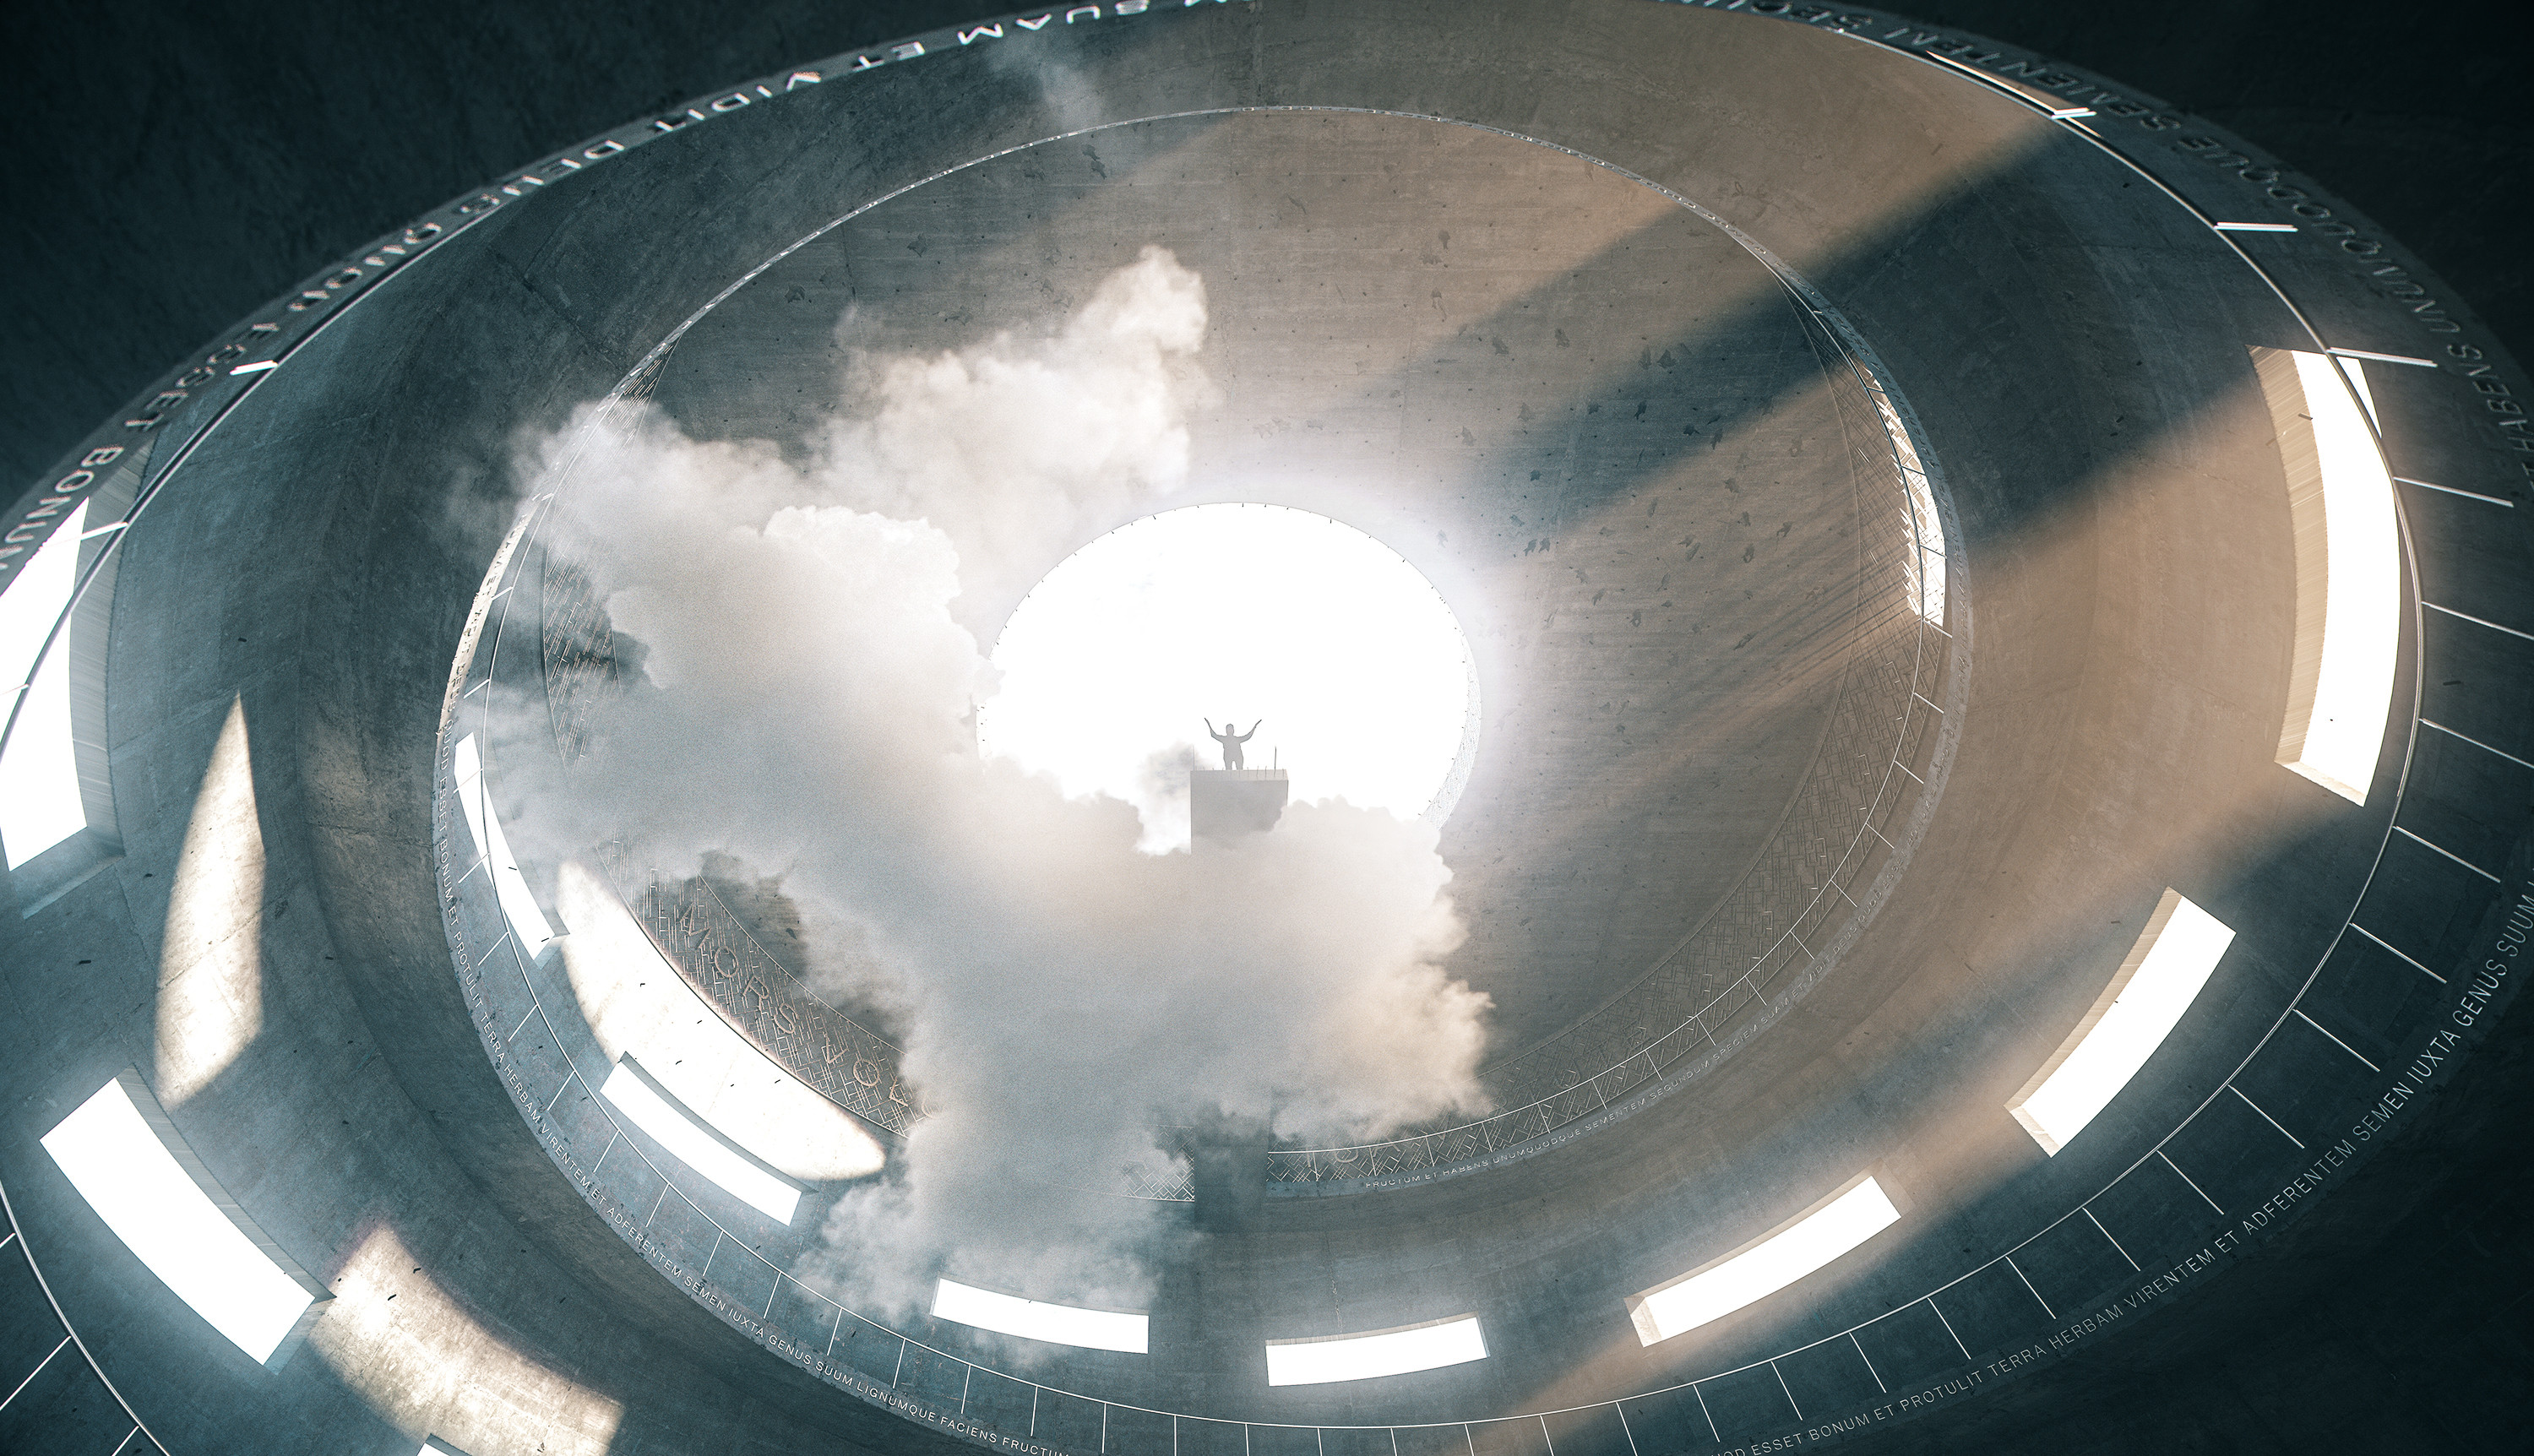 A man is about to commit suicide in Suicidarum silo XXV. Poisonous cloud of  BF₃ obstructs the view of raw concrete floor, encouraging suicider to jump with less hesitation.